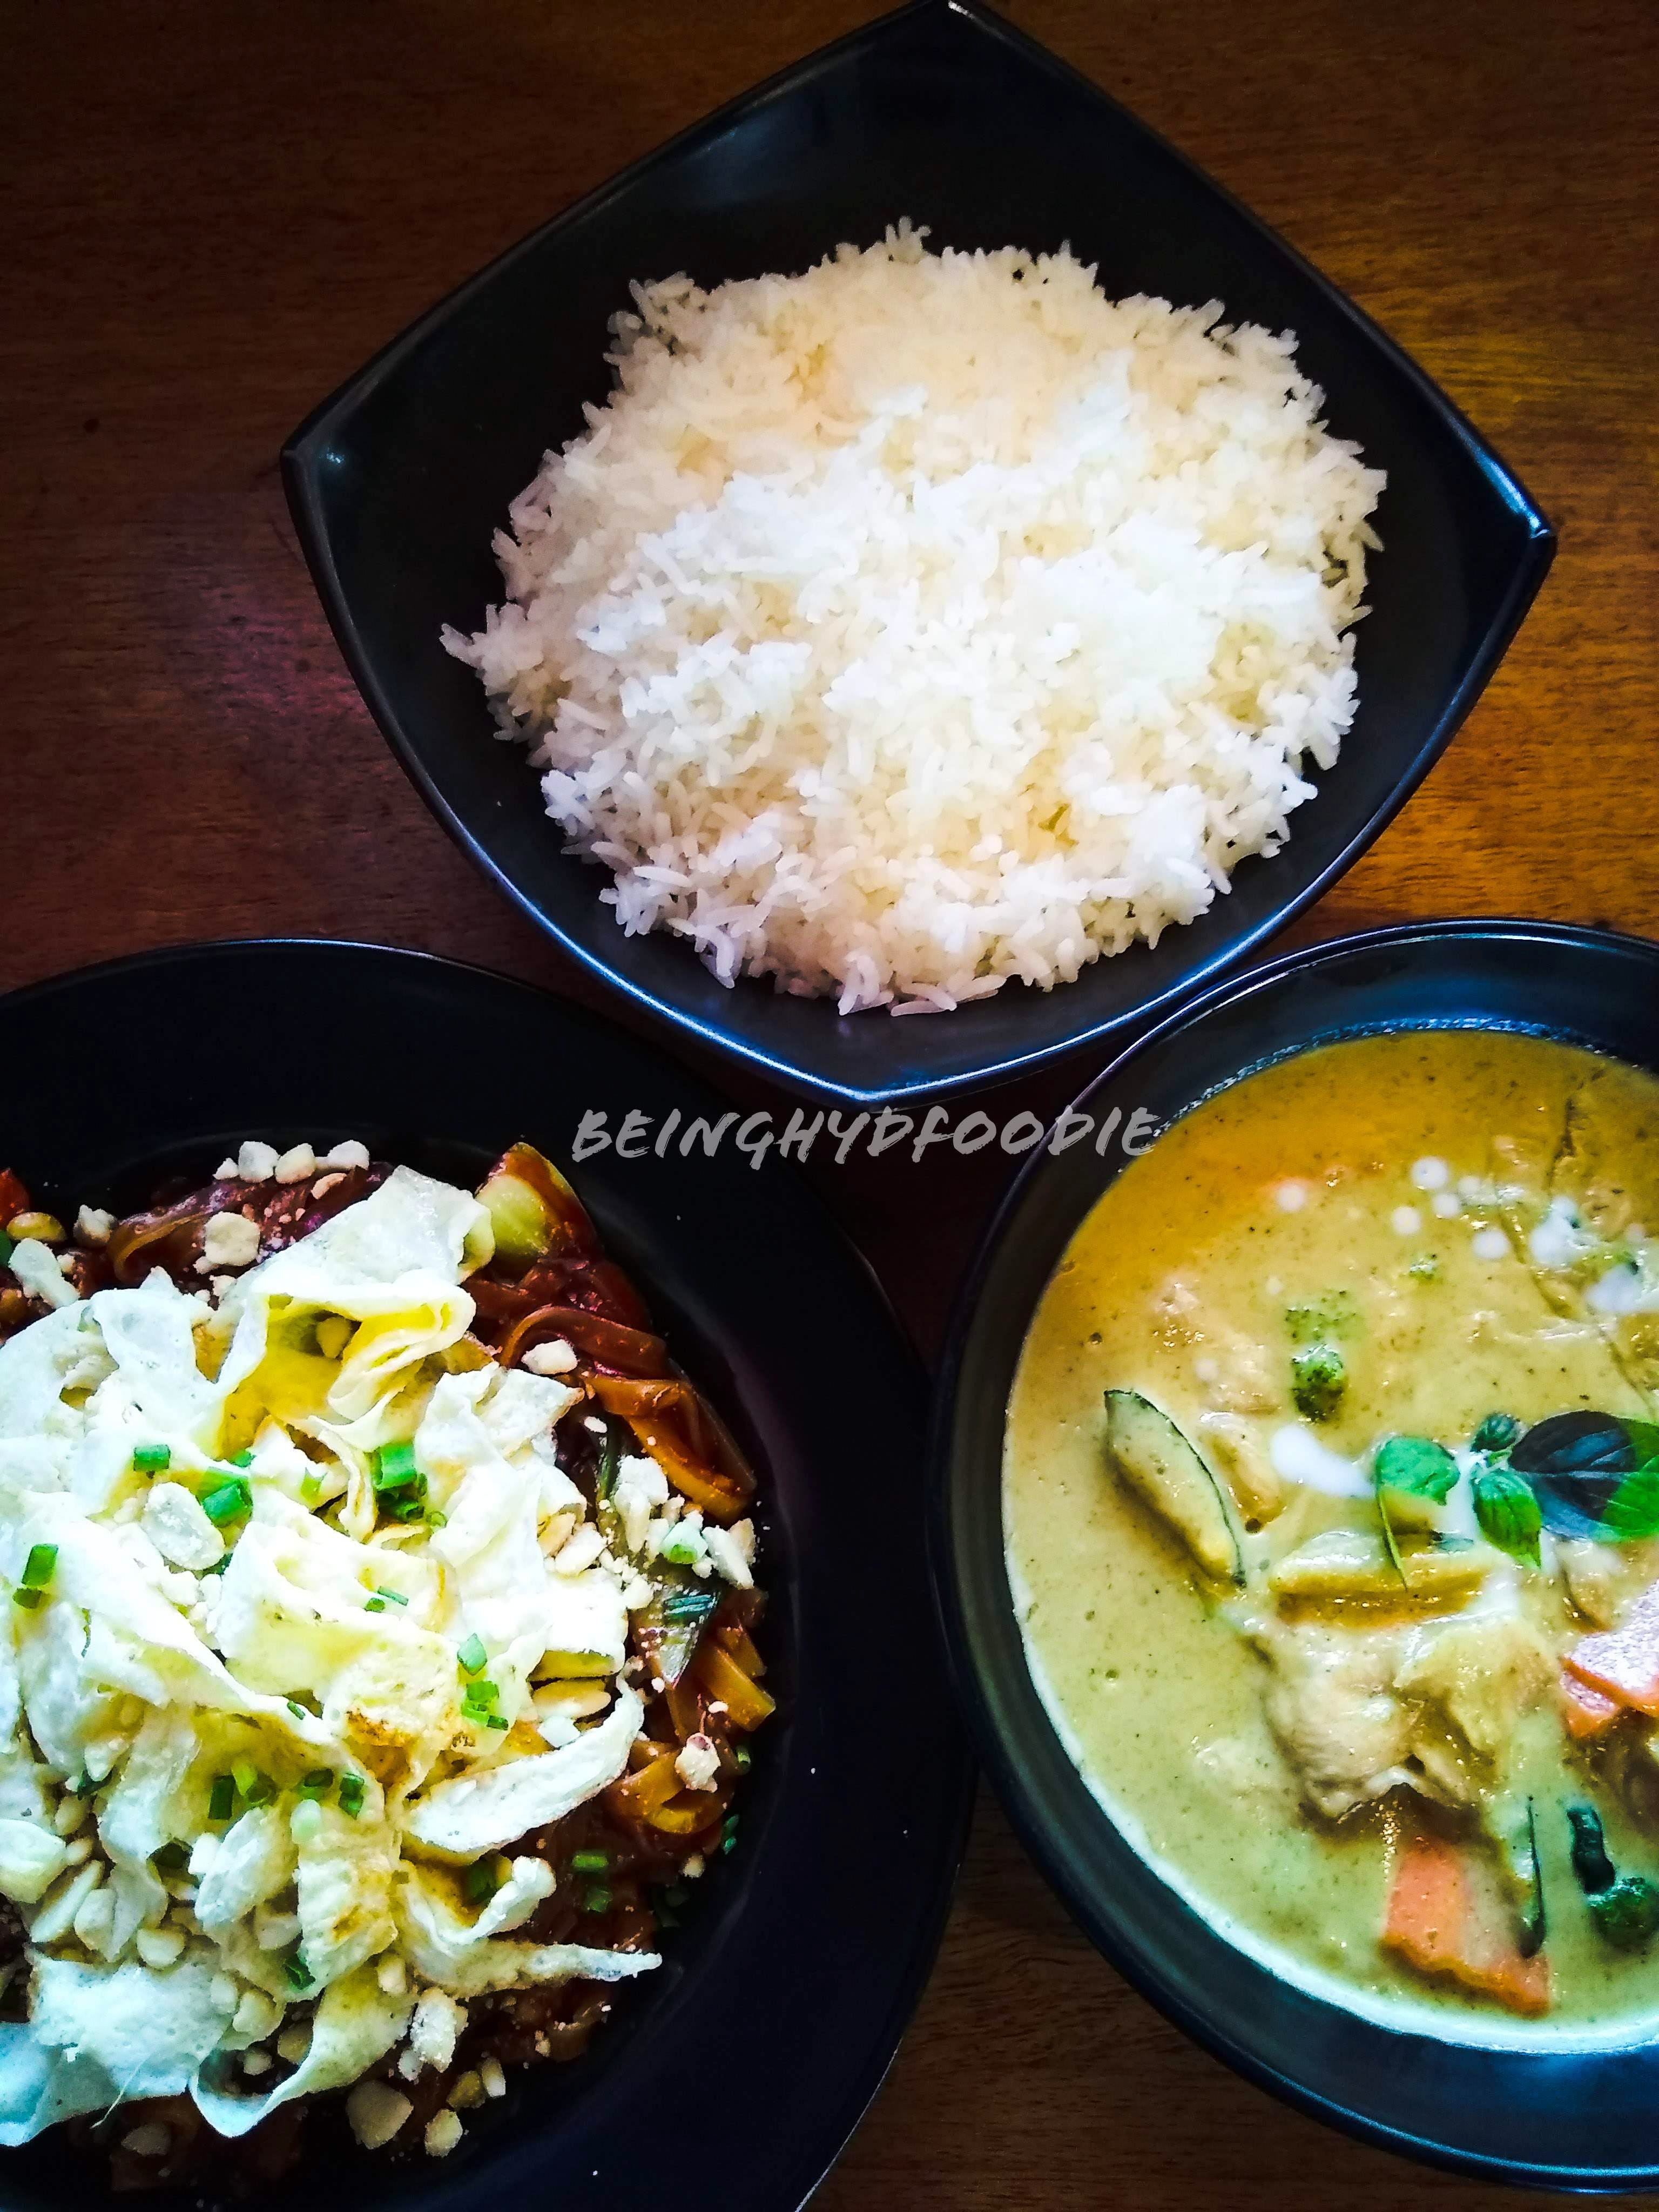 Dish,Food,Cuisine,Steamed rice,Ingredient,White rice,Jasmine rice,Lunch,Produce,Rice